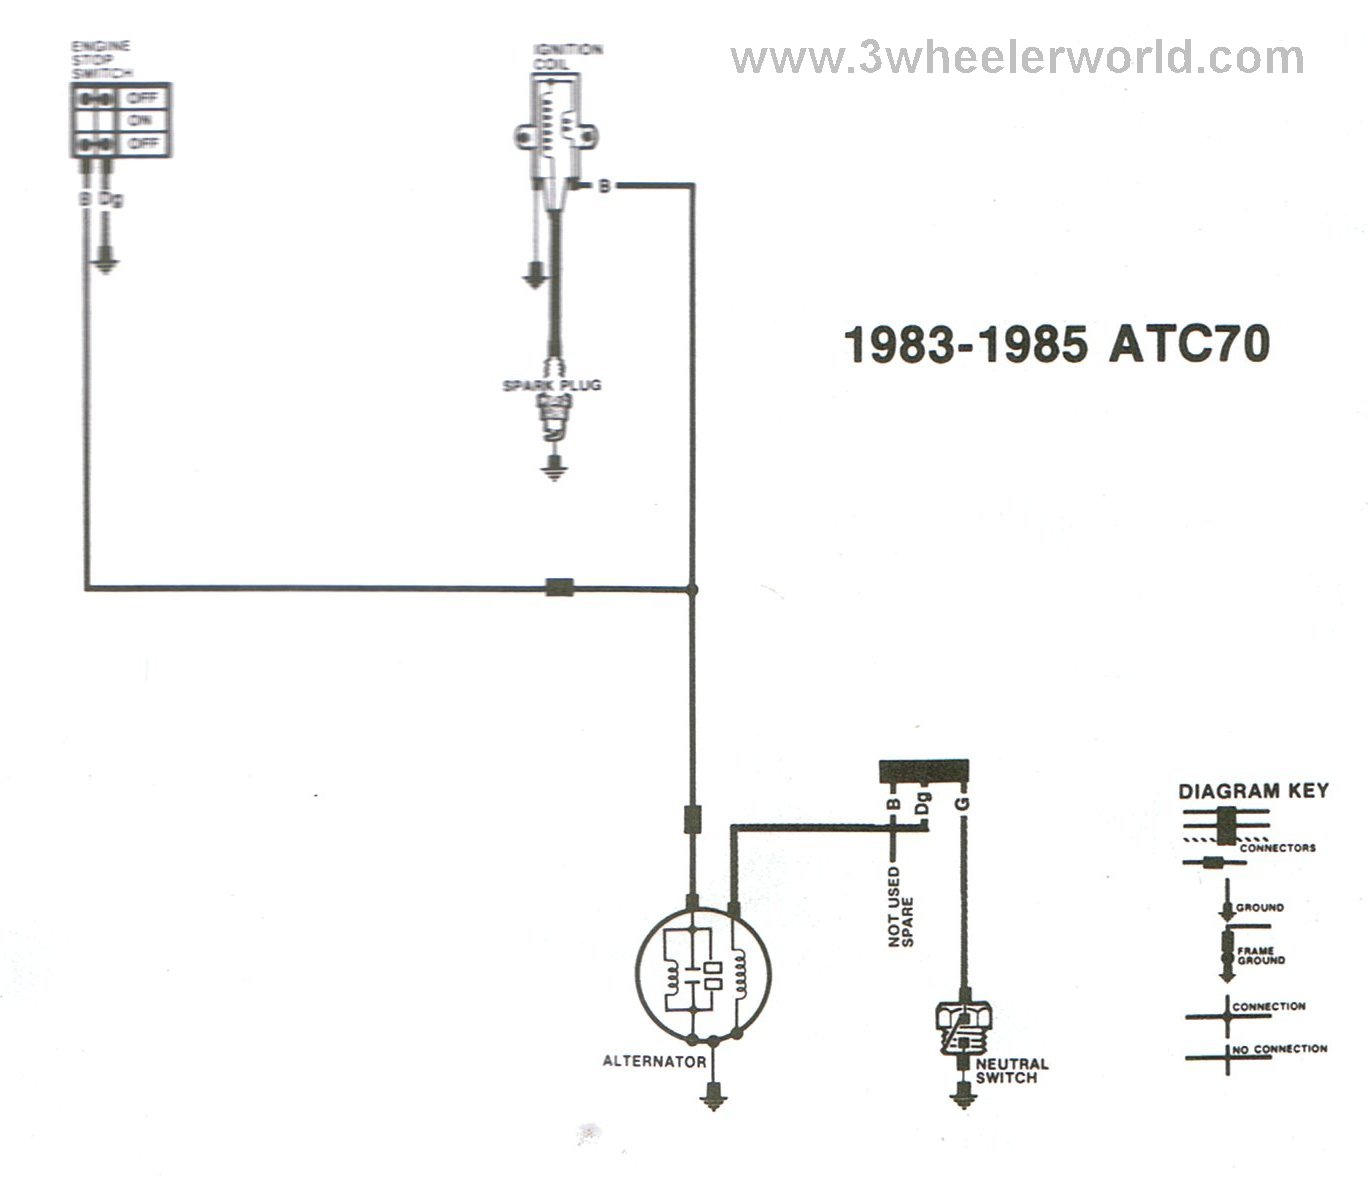 ATC70x83Thru85 3 wheeler world tech help honda wiring diagrams atc 70 wiring diagram at bayanpartner.co